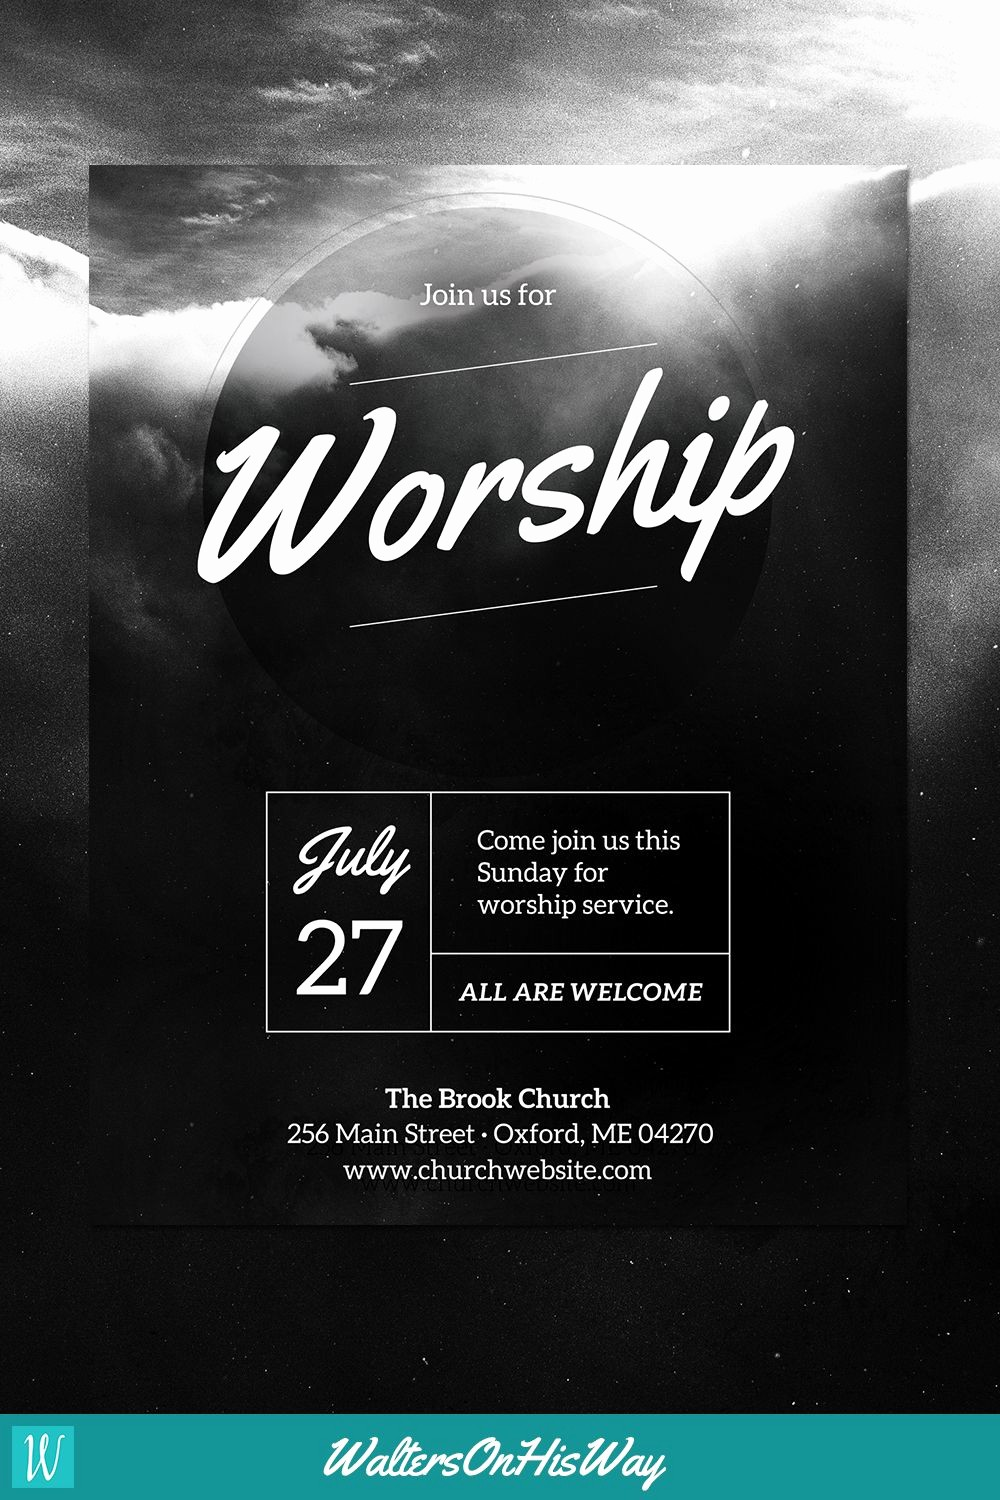 Microsoft Word event Flyer Template Luxury Diy Church event Flyer Template Heavenly Worship for